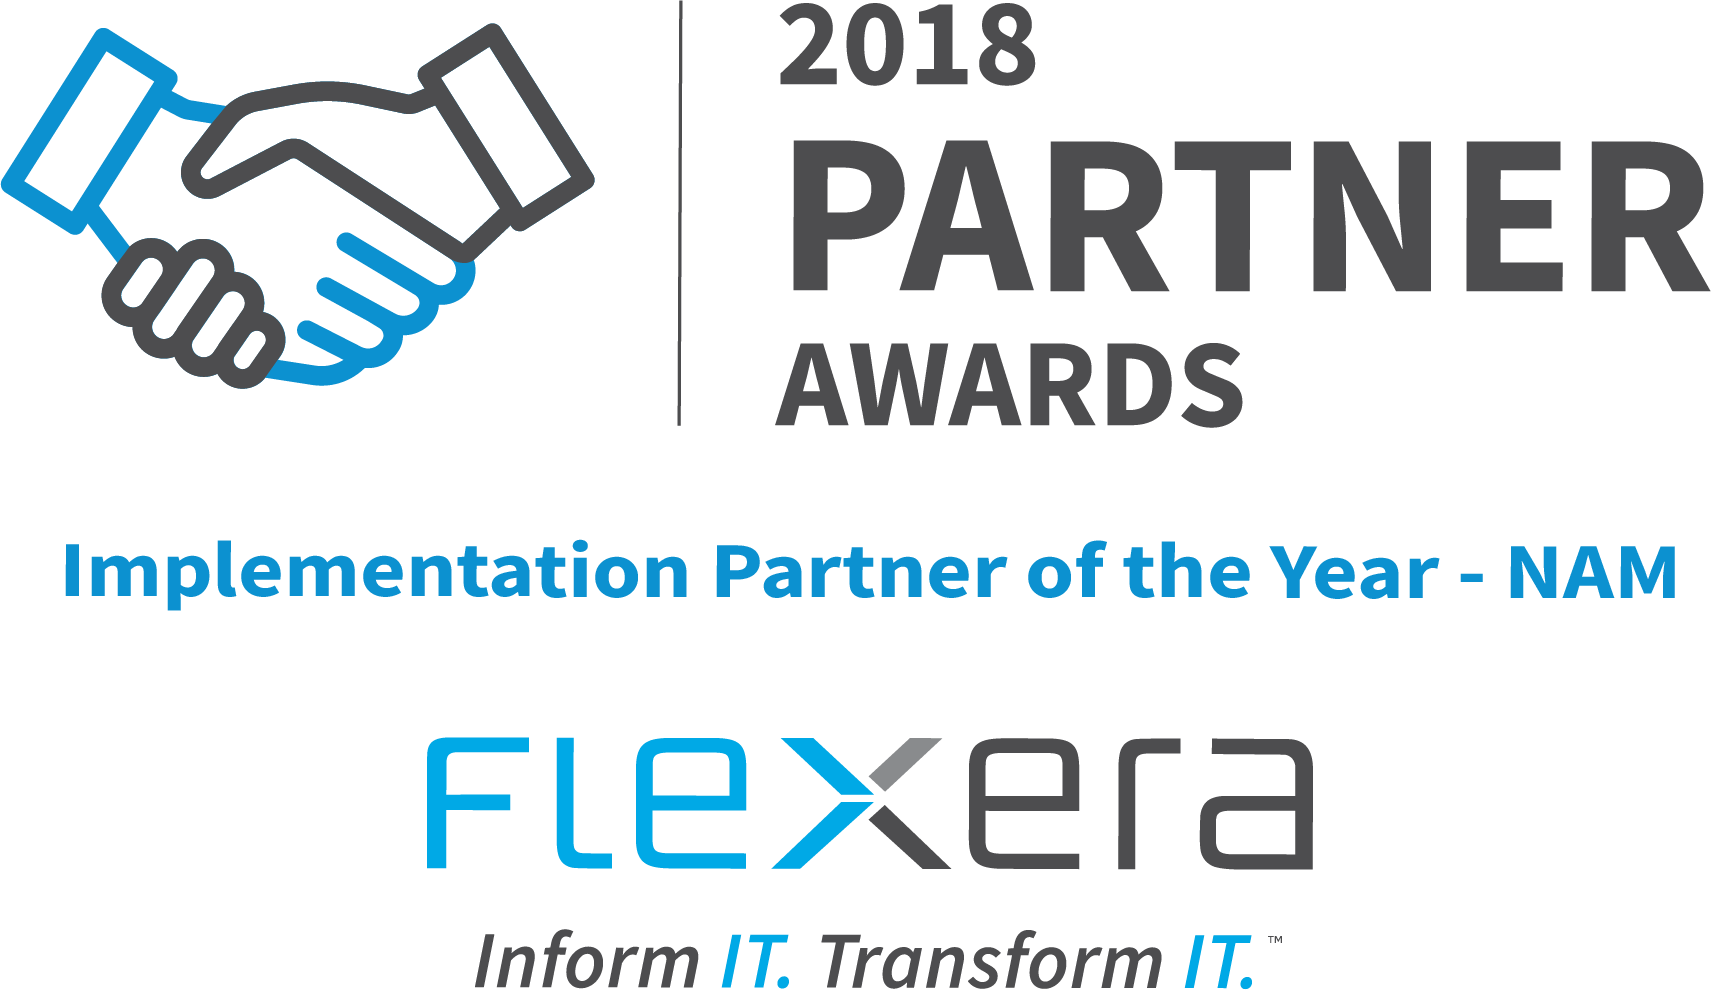 Implementation Partner of the Year